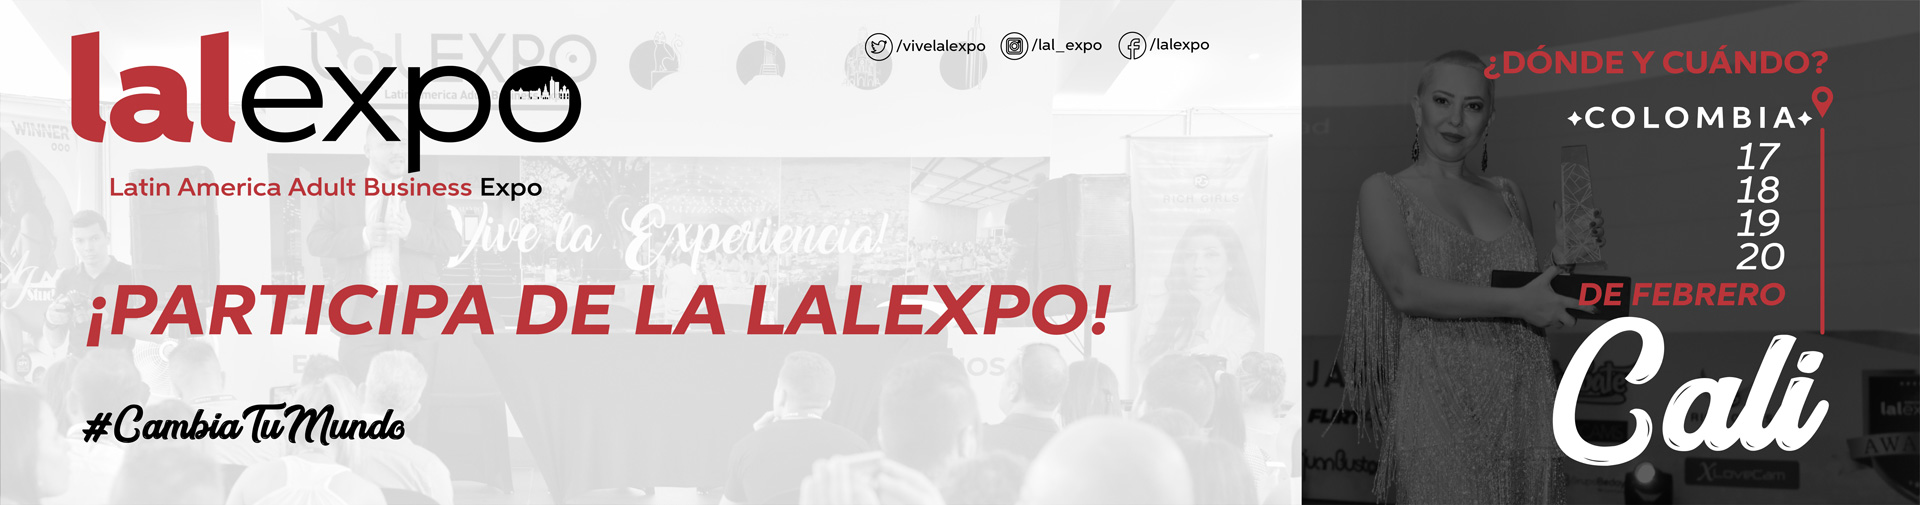 banners_lalexpo_ind-03-3